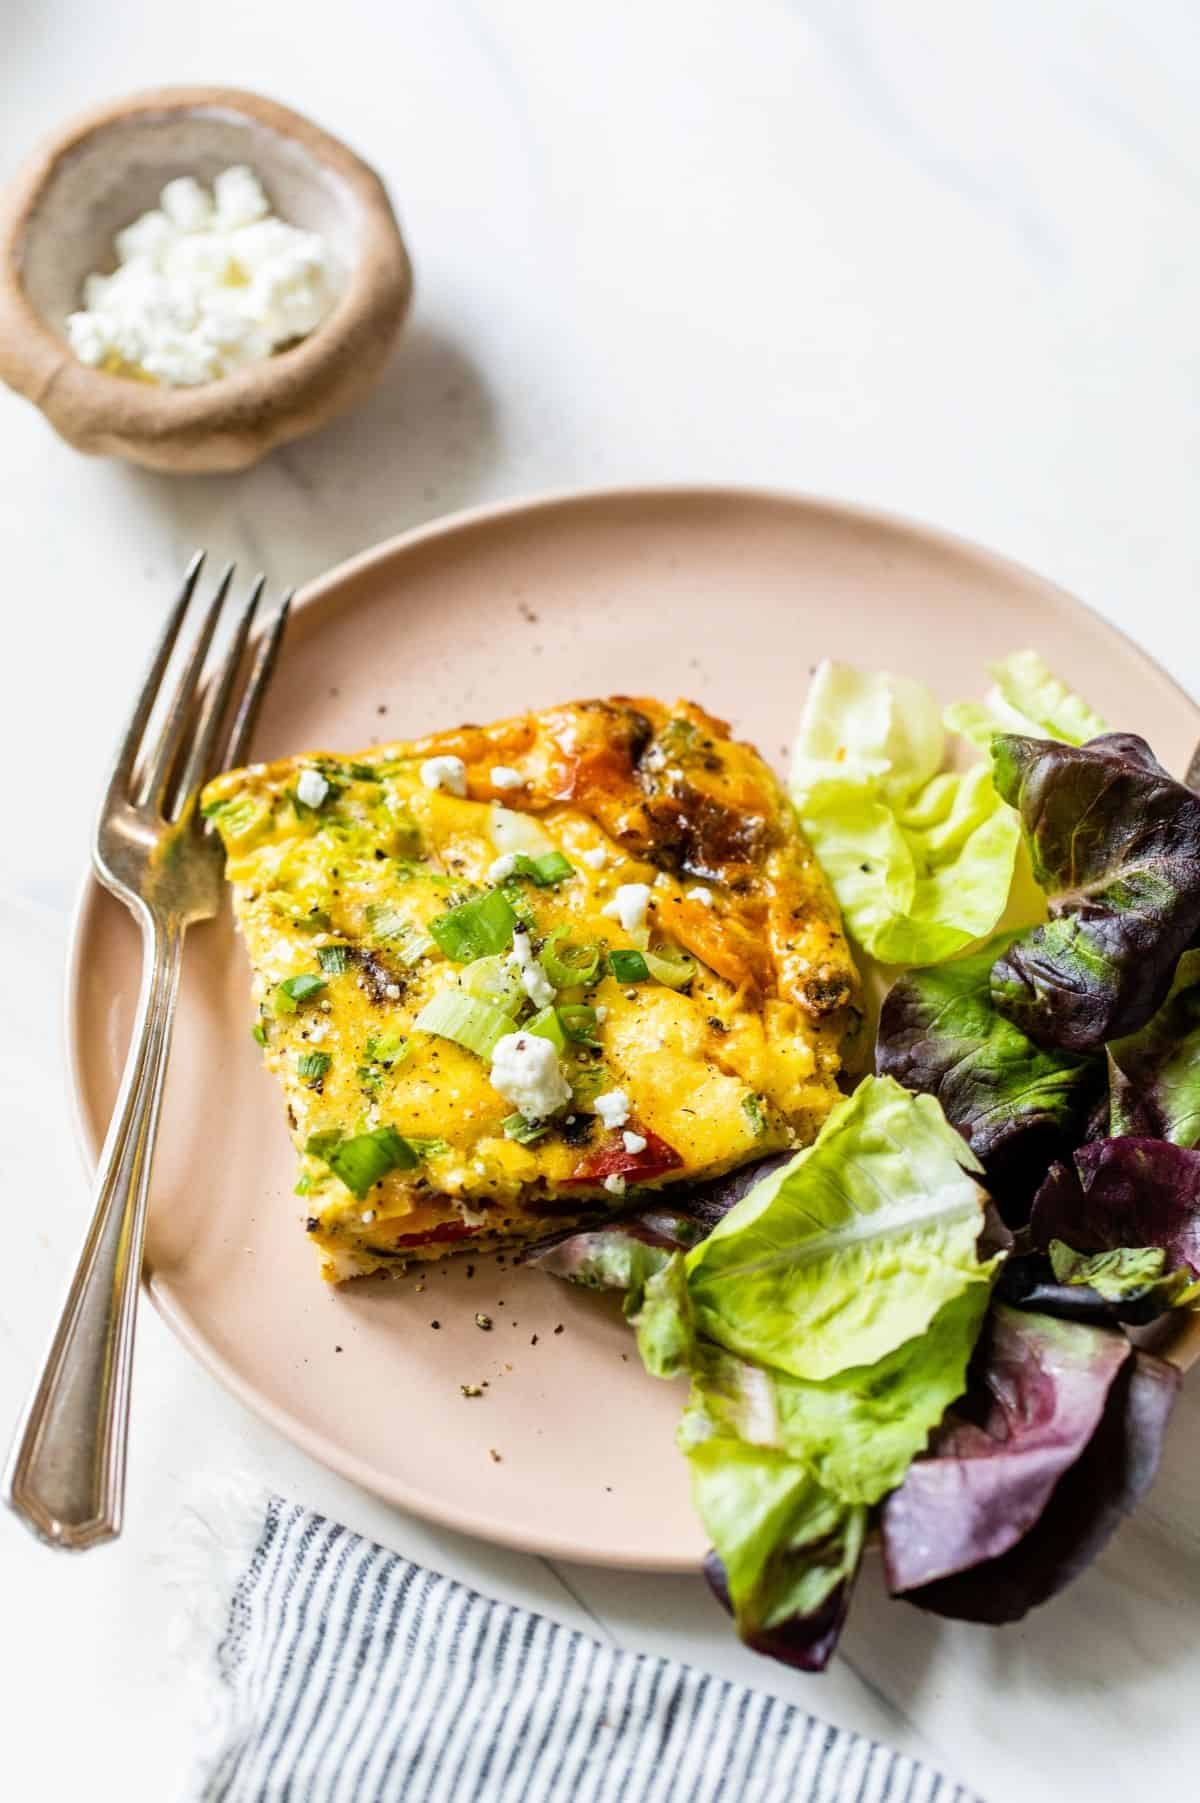 serving of healthy vegetable frittata on a plate with a salad